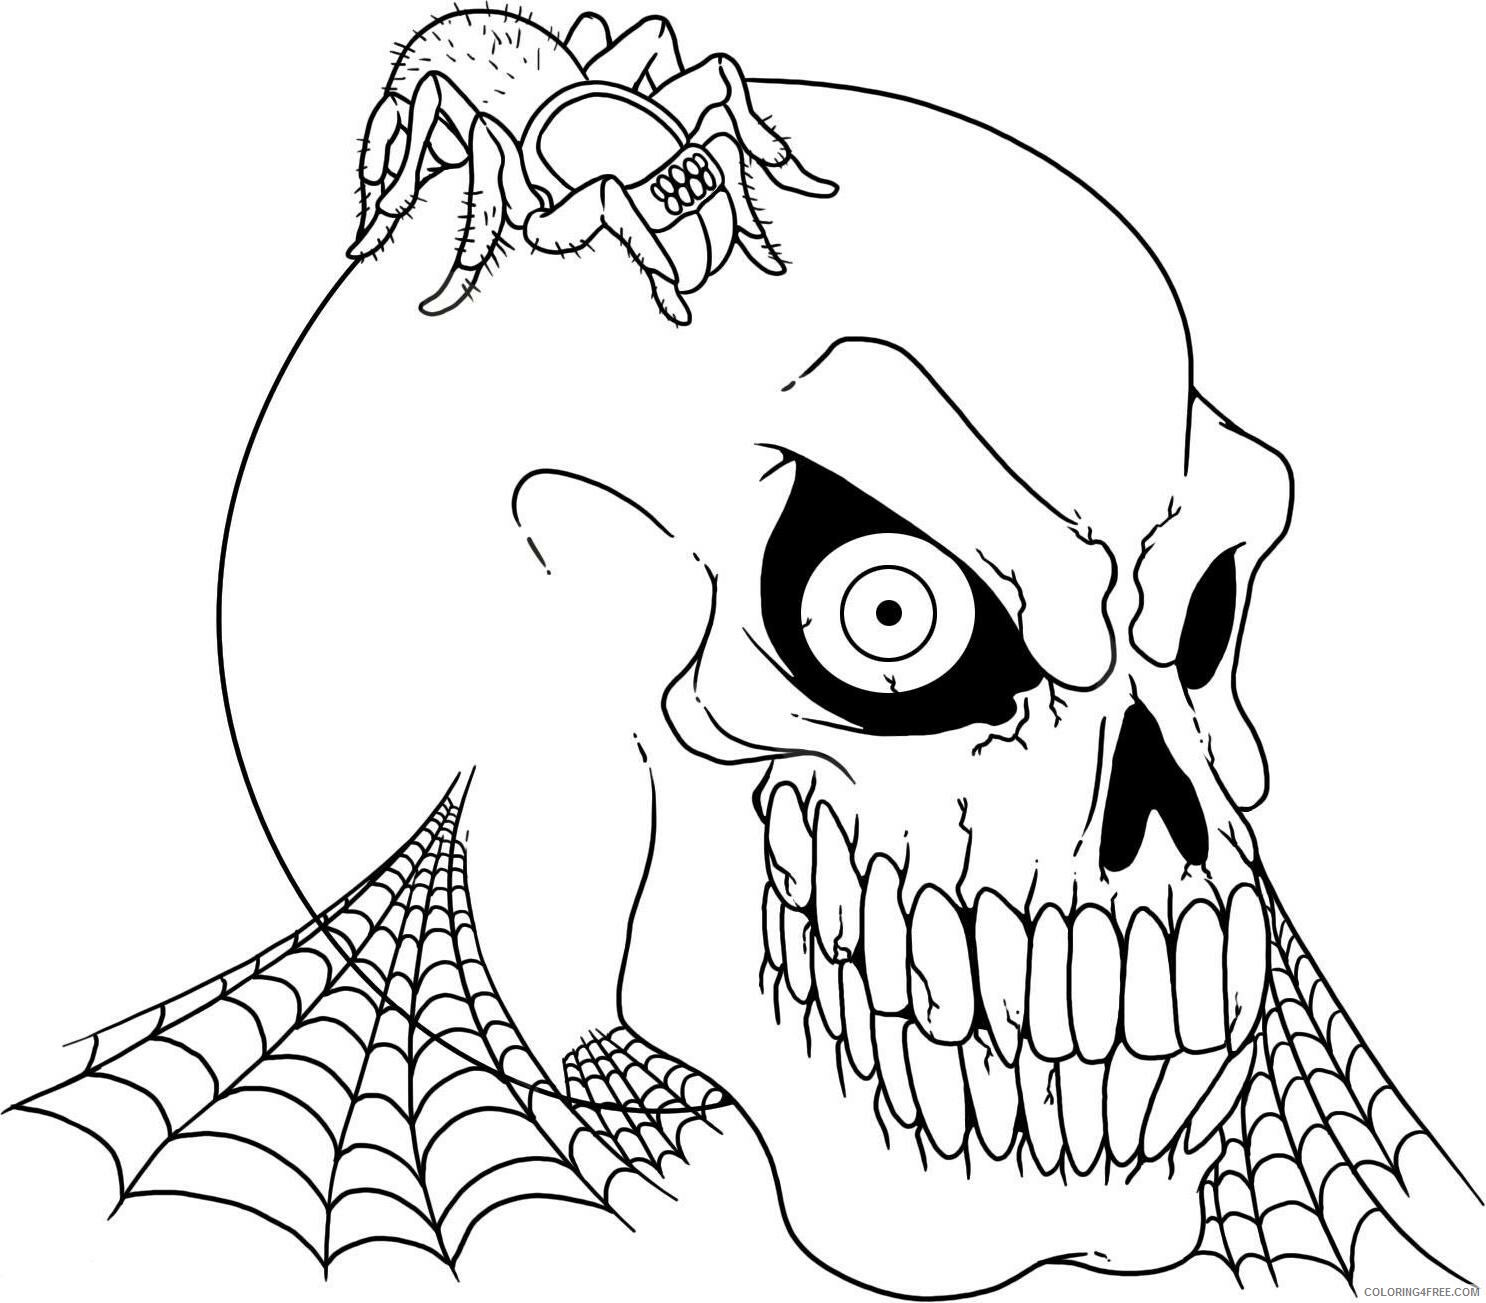 Halloween for Adults Coloring Pages 1539675695_halloween Printable 2020 627 Coloring4free